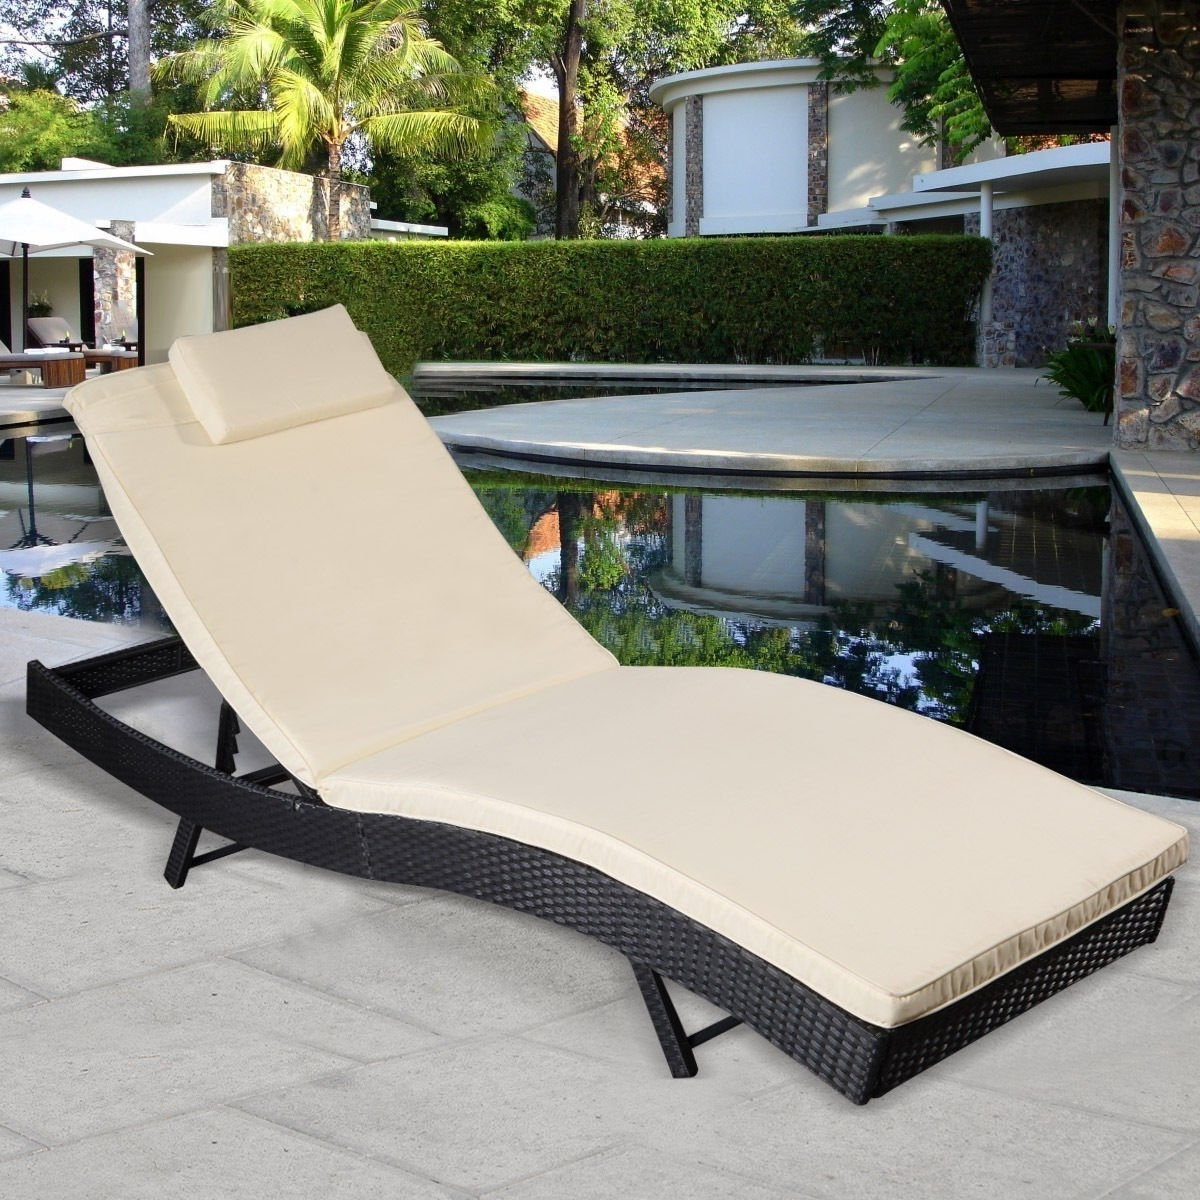 Amazon: Giantex Adjustable Pool Chaise Lounge Chair Outdoor Inside Recent Chaise Lounge Chairs Made In Usa (View 15 of 15)